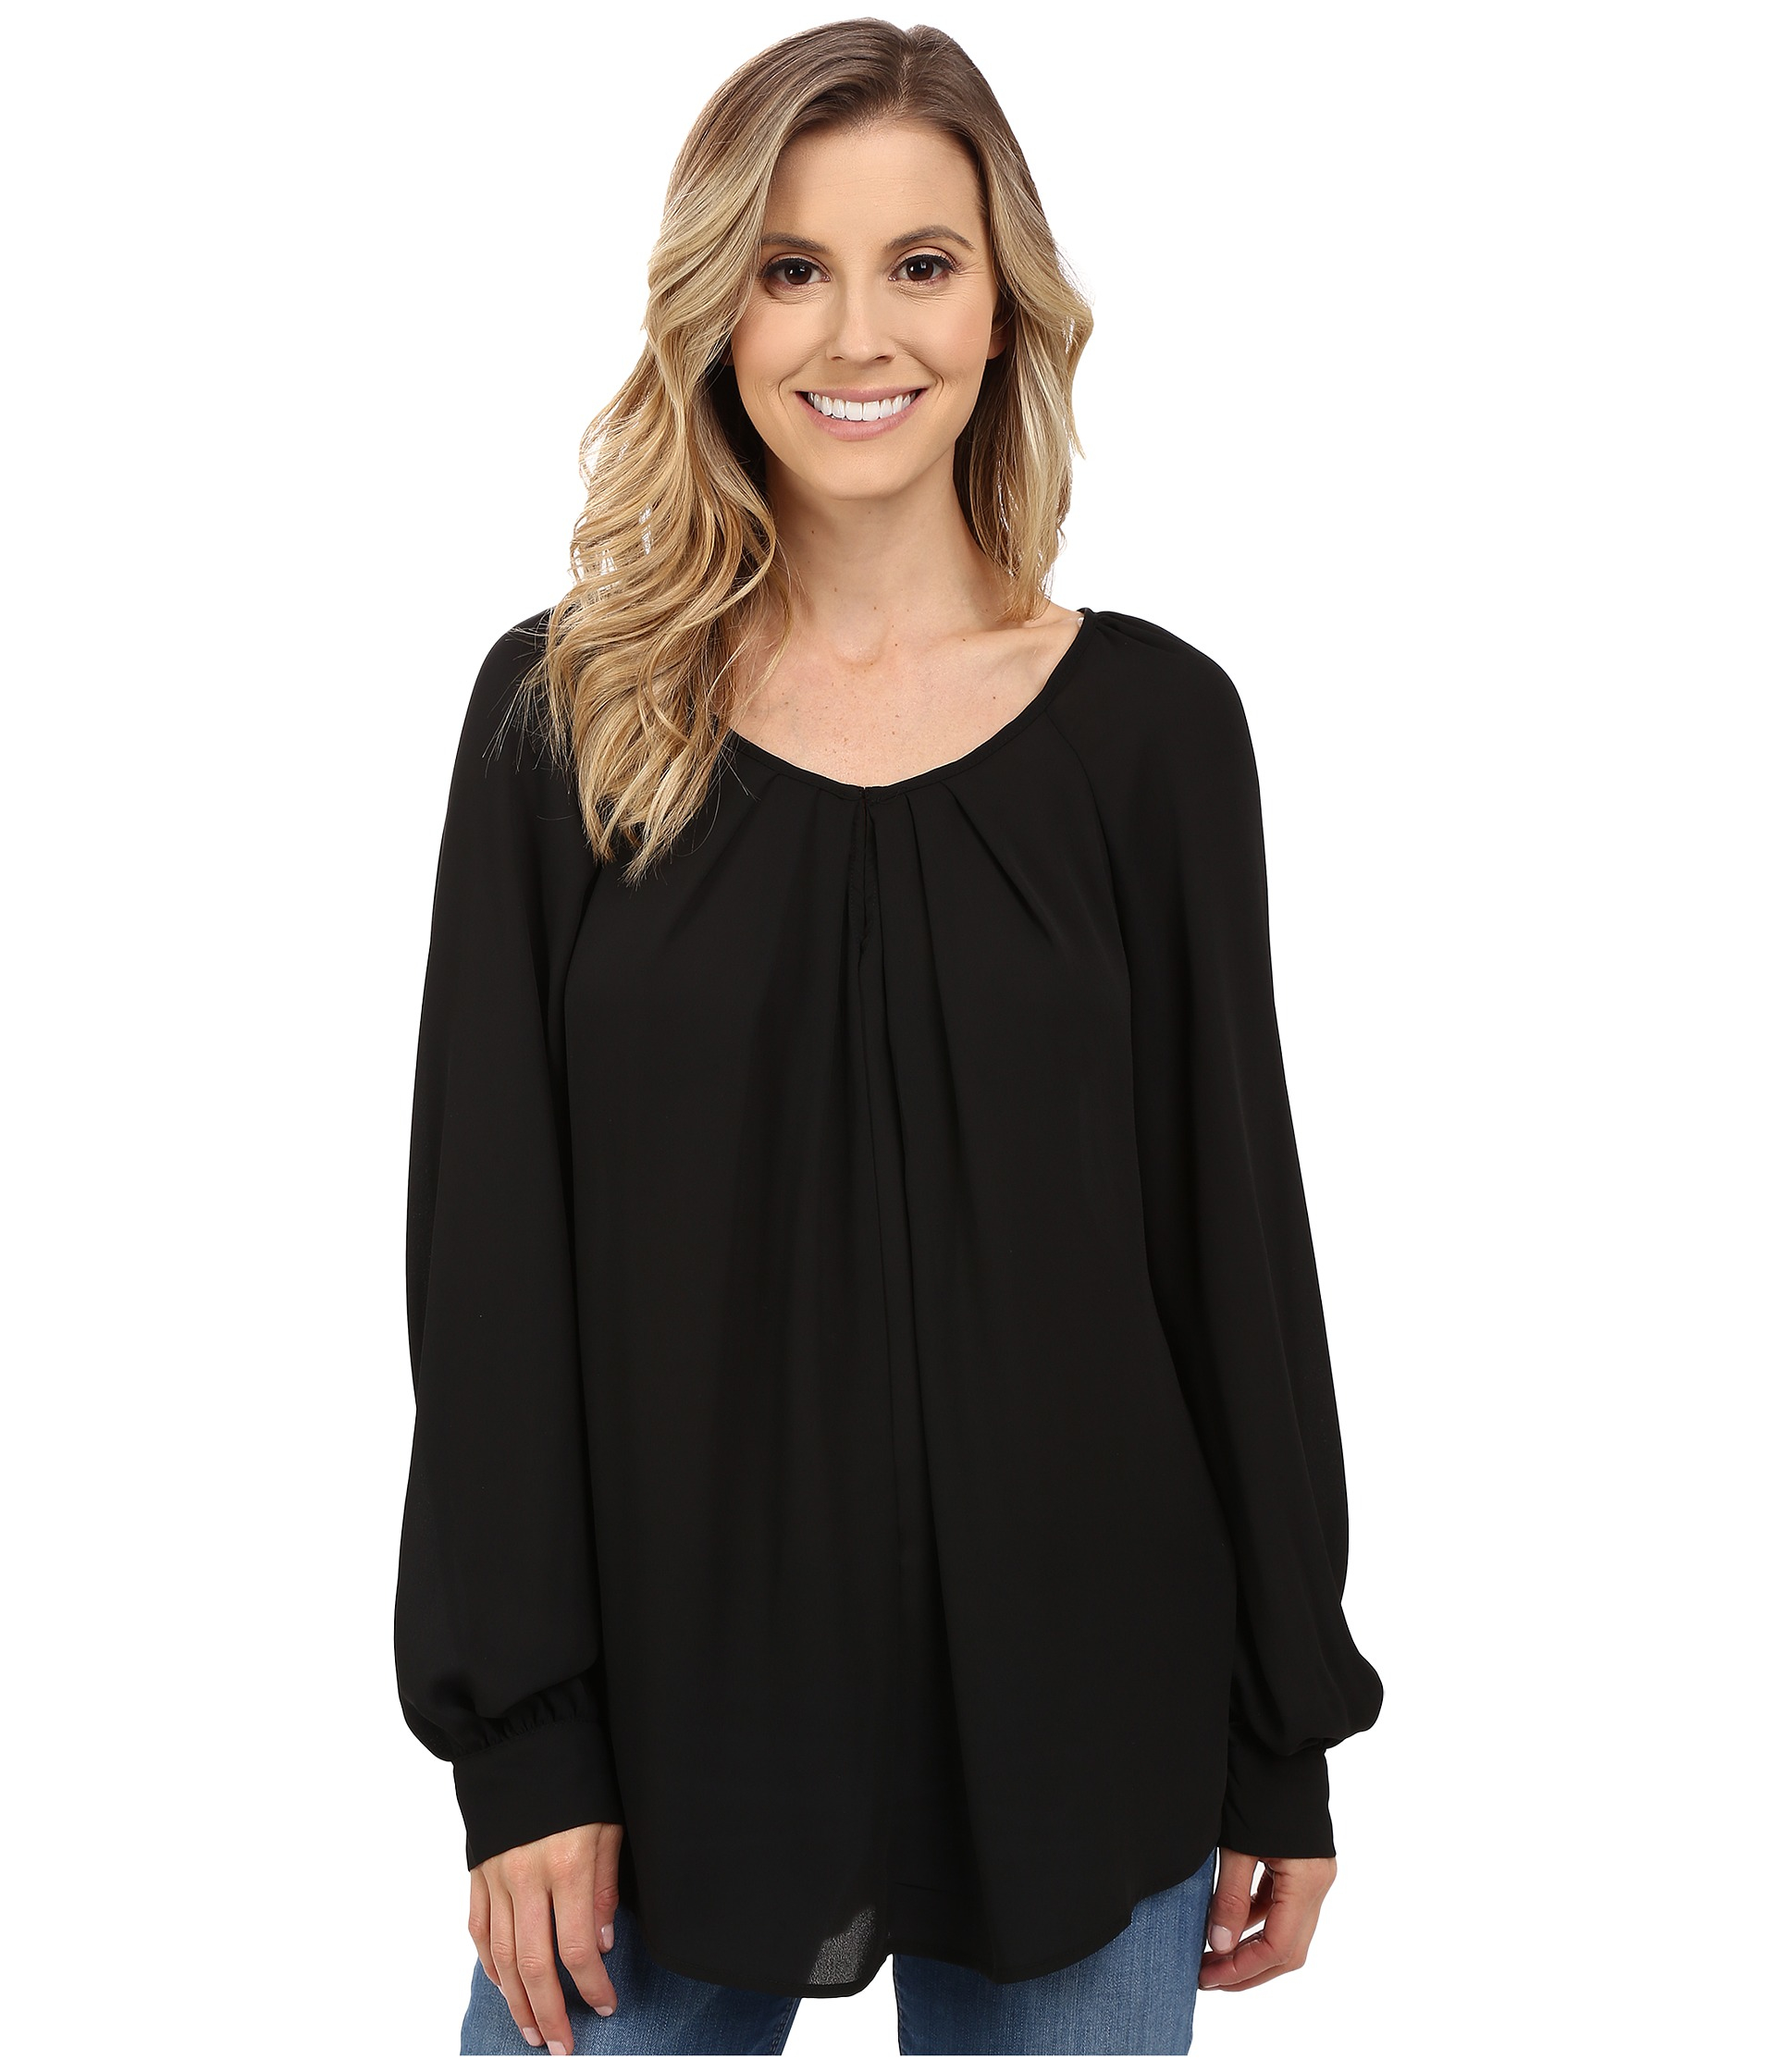 Shop for womens long sleeve blouses online at Target. Free shipping on purchases over $35 and save 5% every day with your Target REDcard. skip to main content skip to footer. Women's Long Sleeve Shirred Blouse - Prologue™ Lilac.